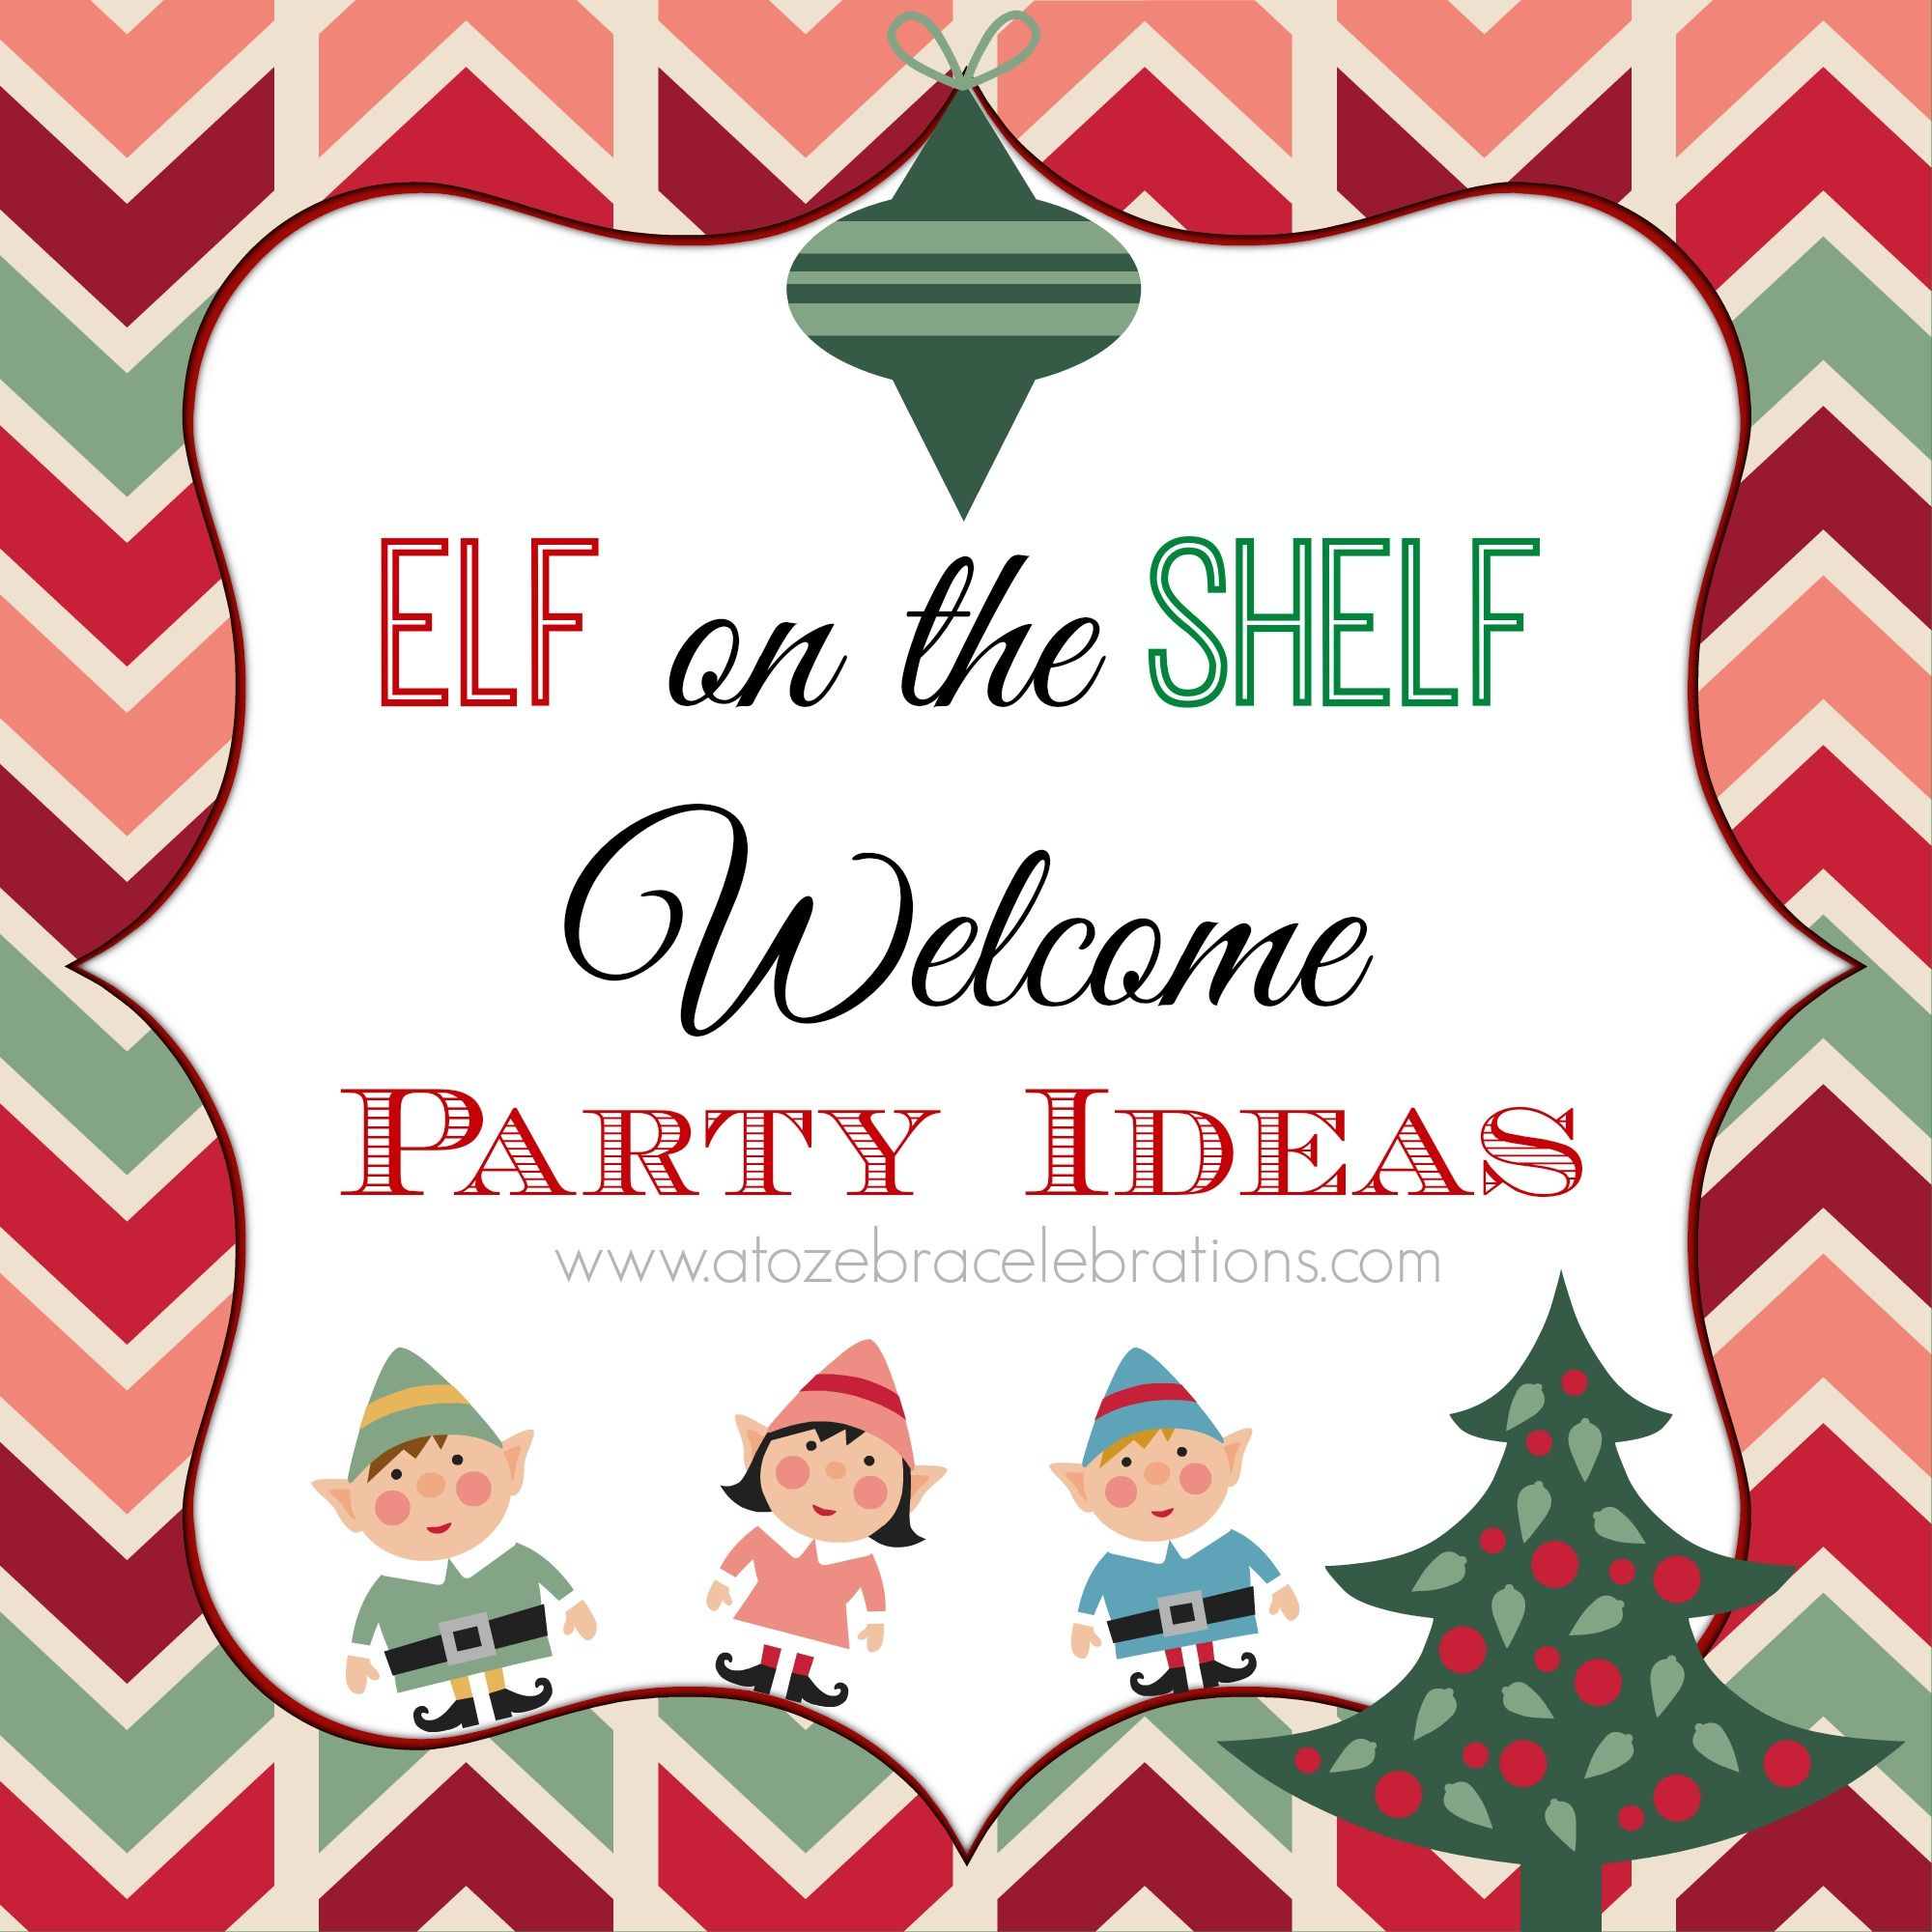 Elf on the Shelf Welcome Party Ideas. Amanda's Partys to Go has some cute printables